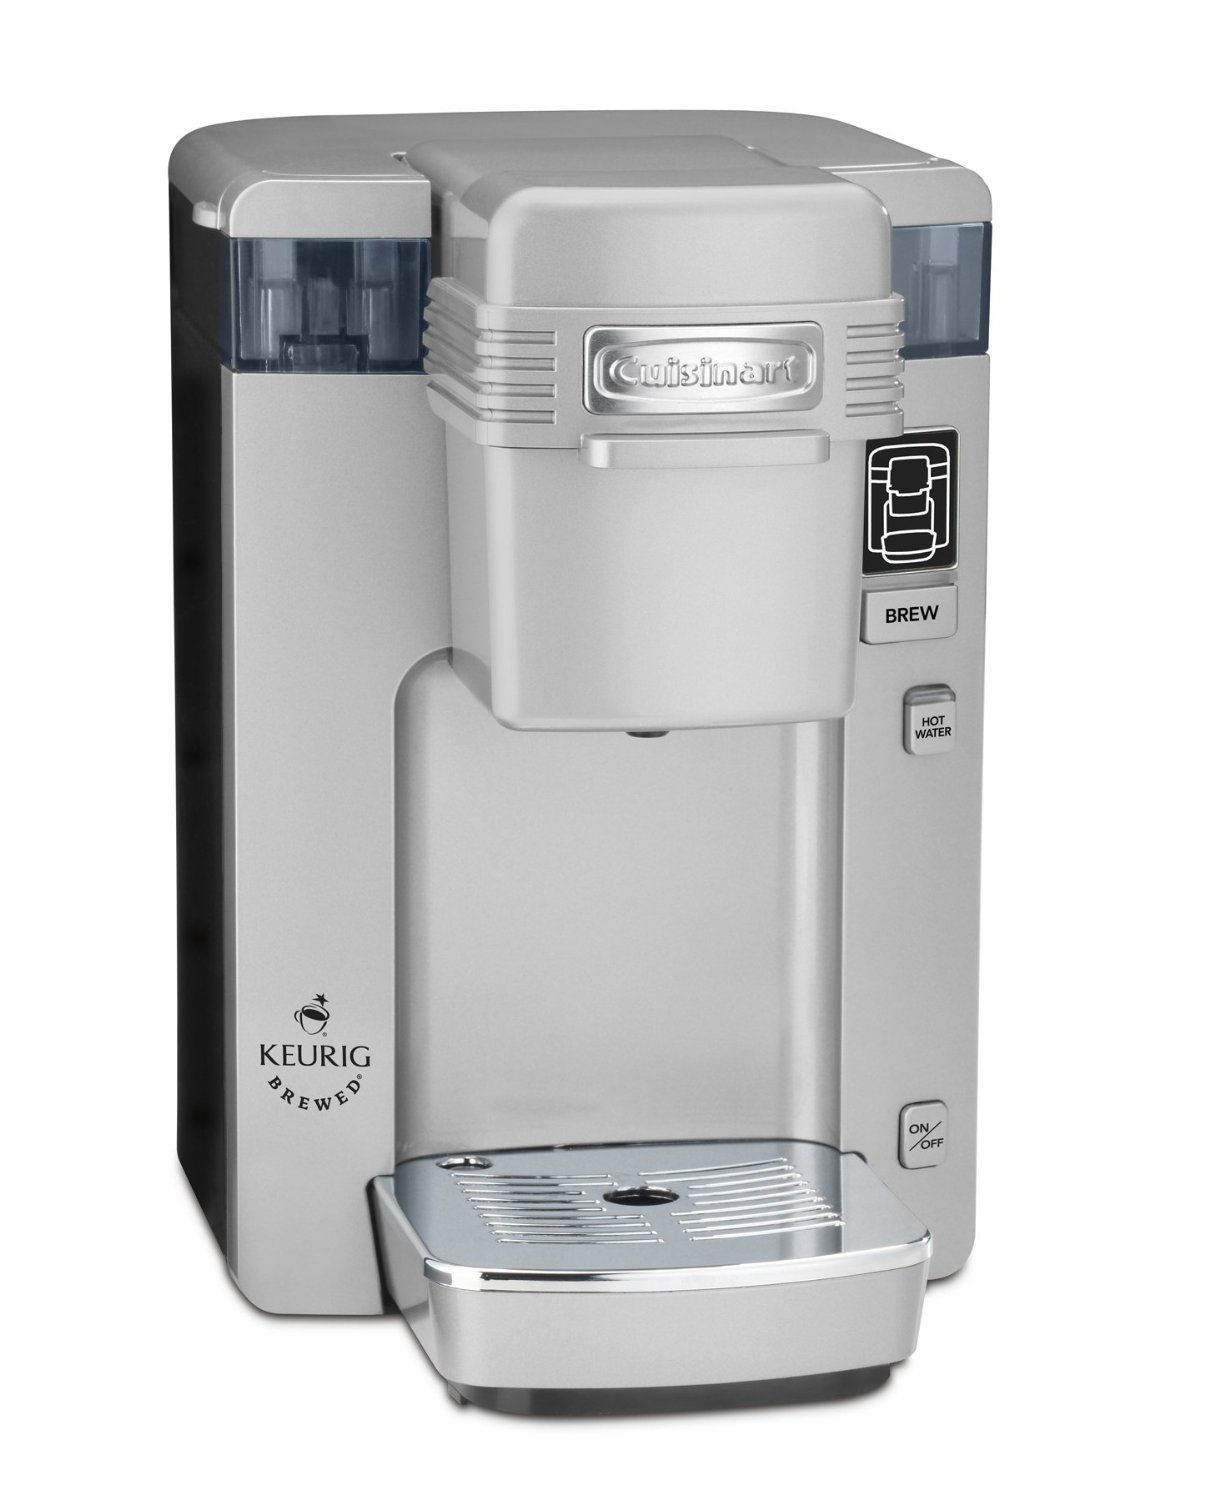 Cuisinart Ss 300 Single Serve Brewing System Silver Powered By